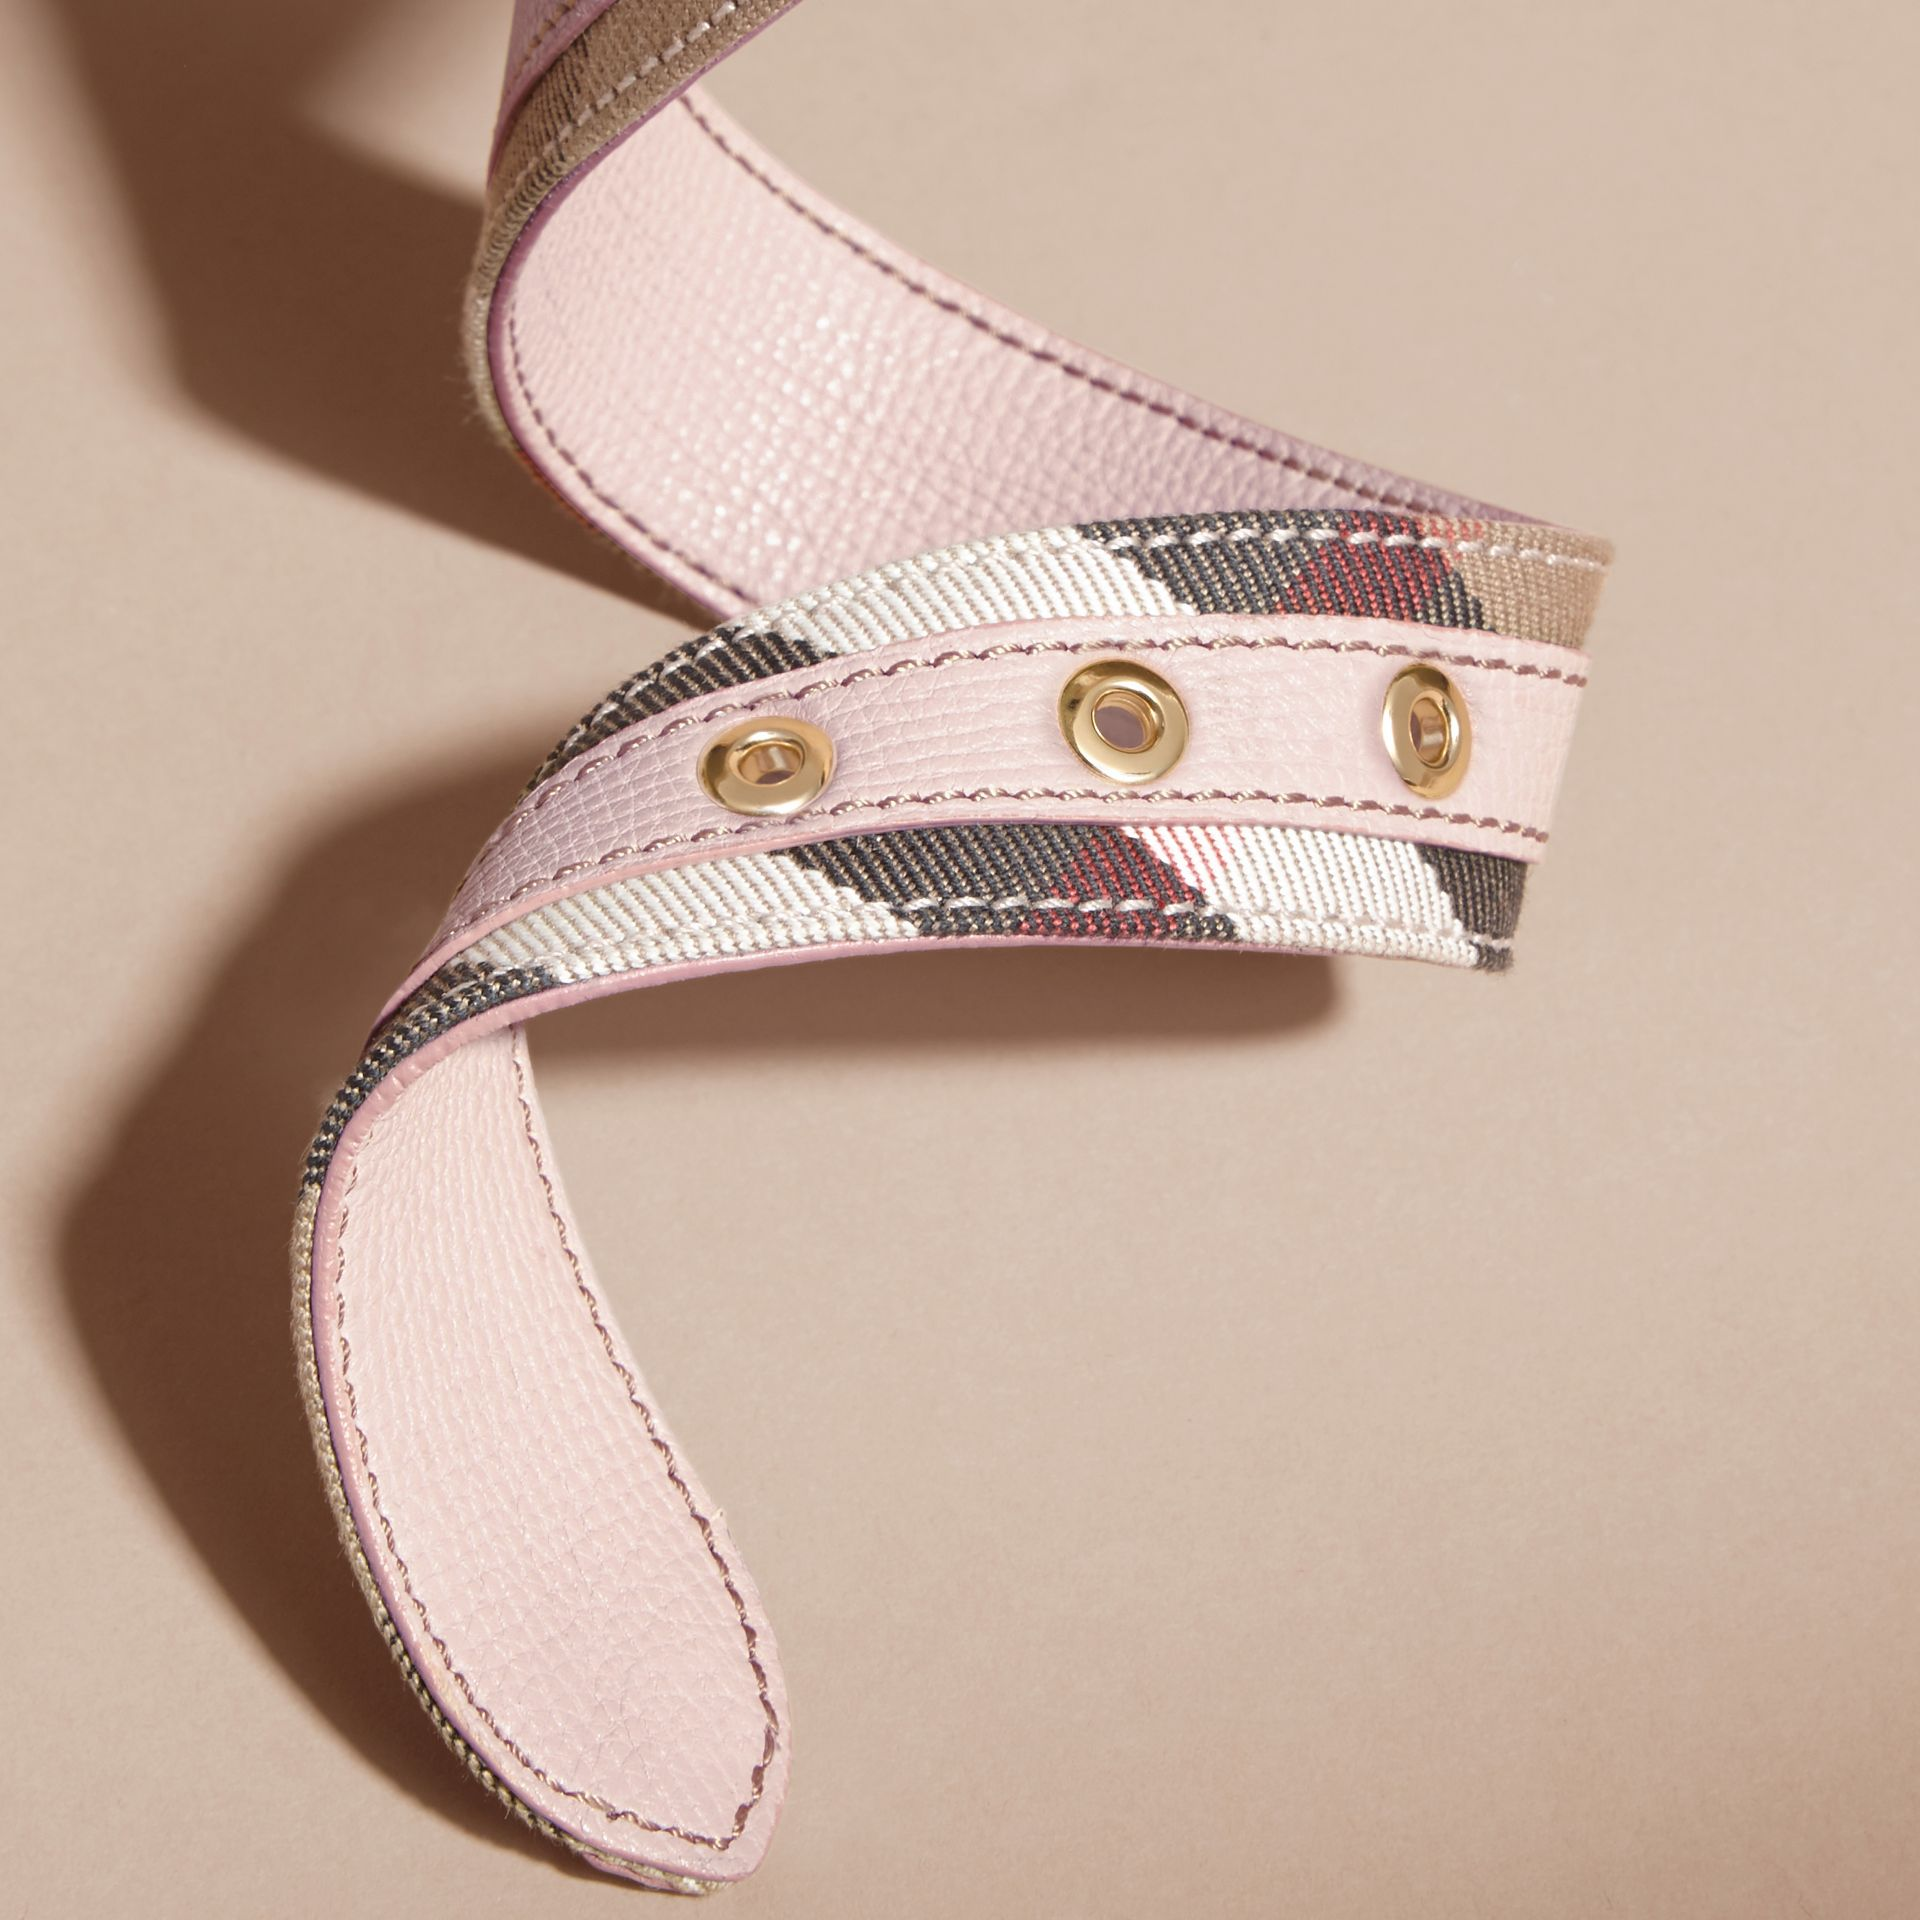 House Check and Grainy Leather Belt in Camel/pale Orchid - Women | Burberry - gallery image 5